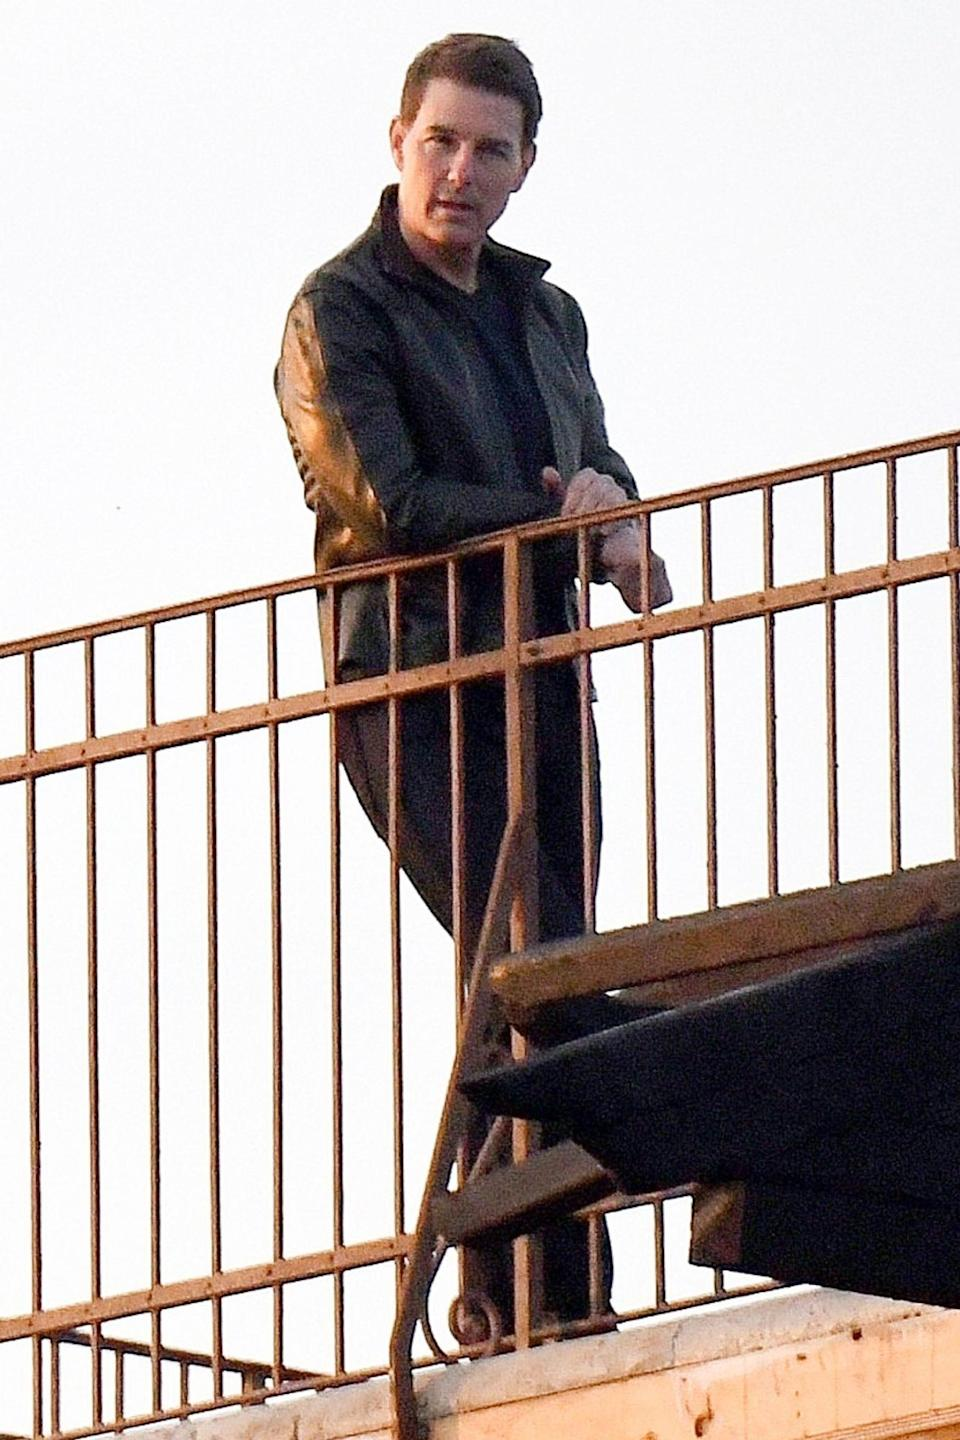 <p>Tom Cruise is seen on the set of <em>Mission Impossible 7</em> on Wednesday in Venice, Italy.</p>